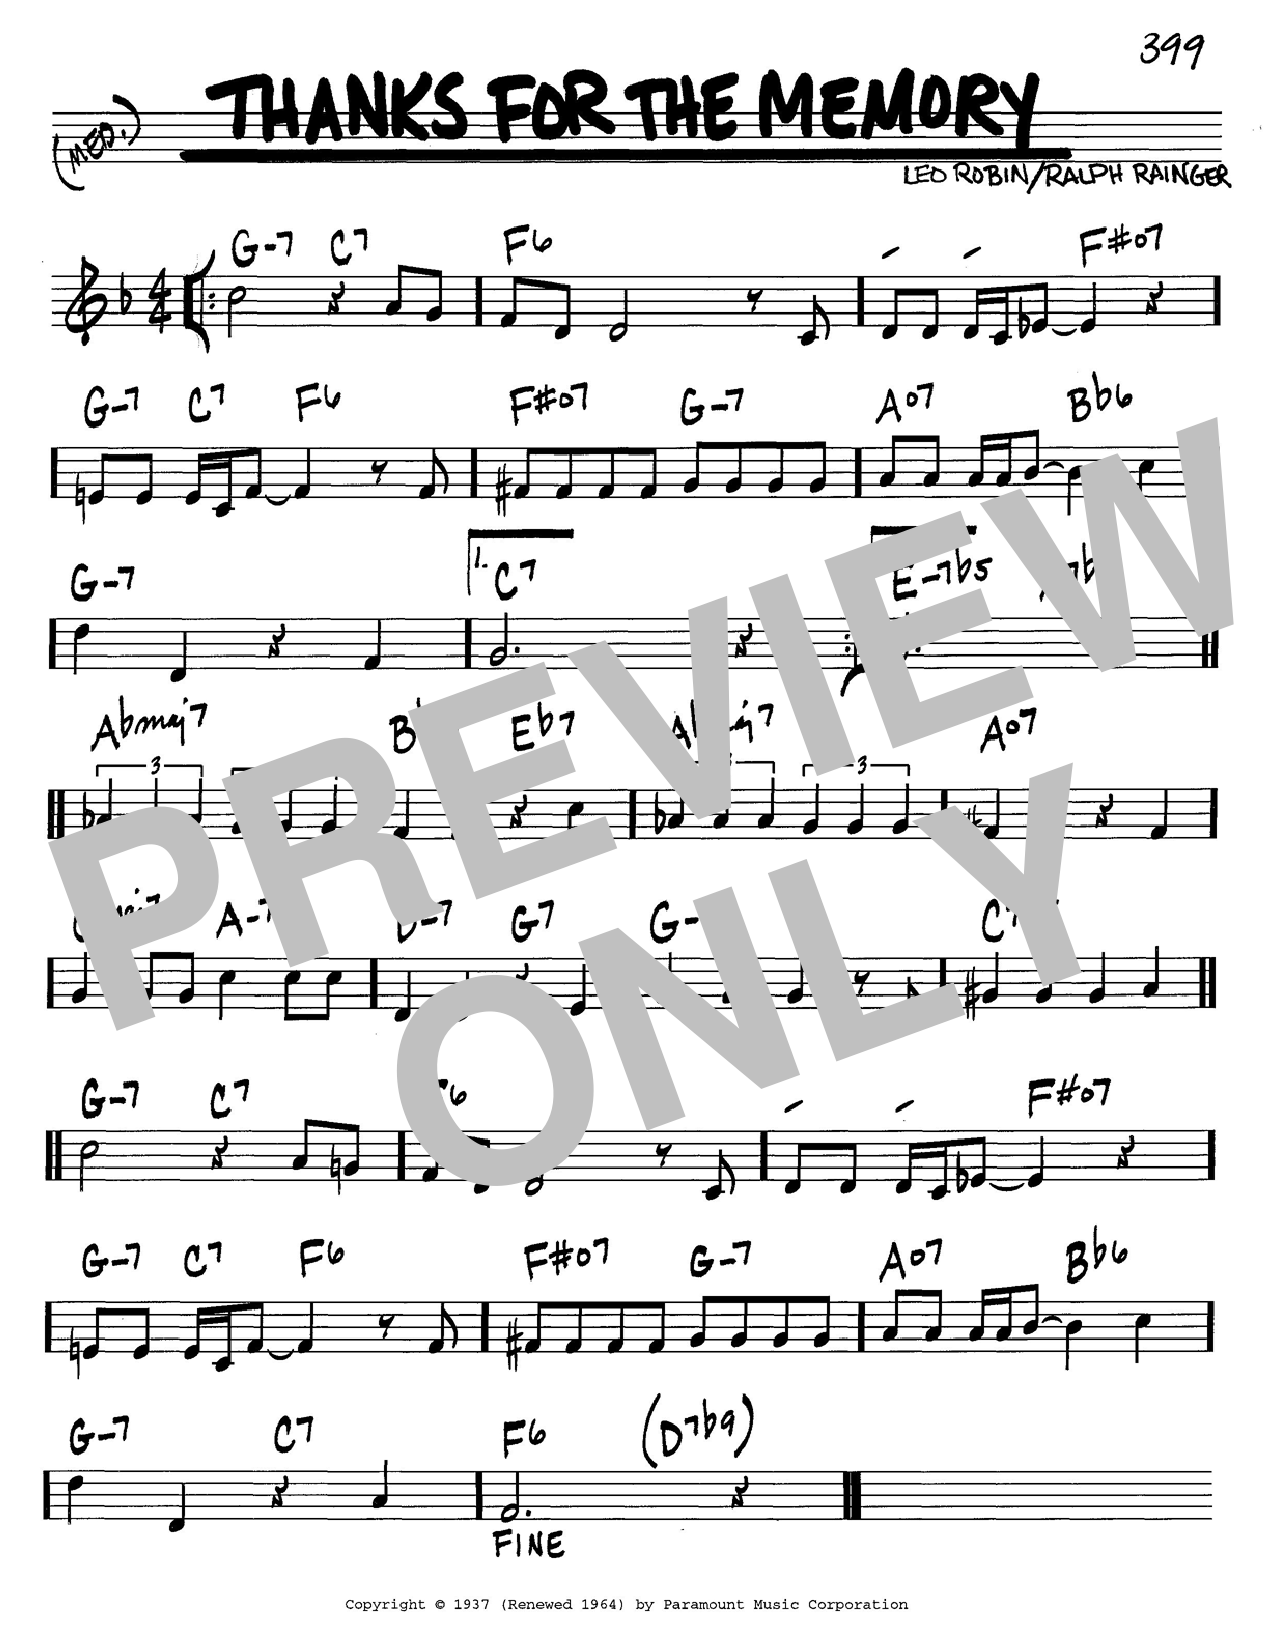 Ralph Rainger Thanks For The Memory sheet music notes and chords. Download Printable PDF.